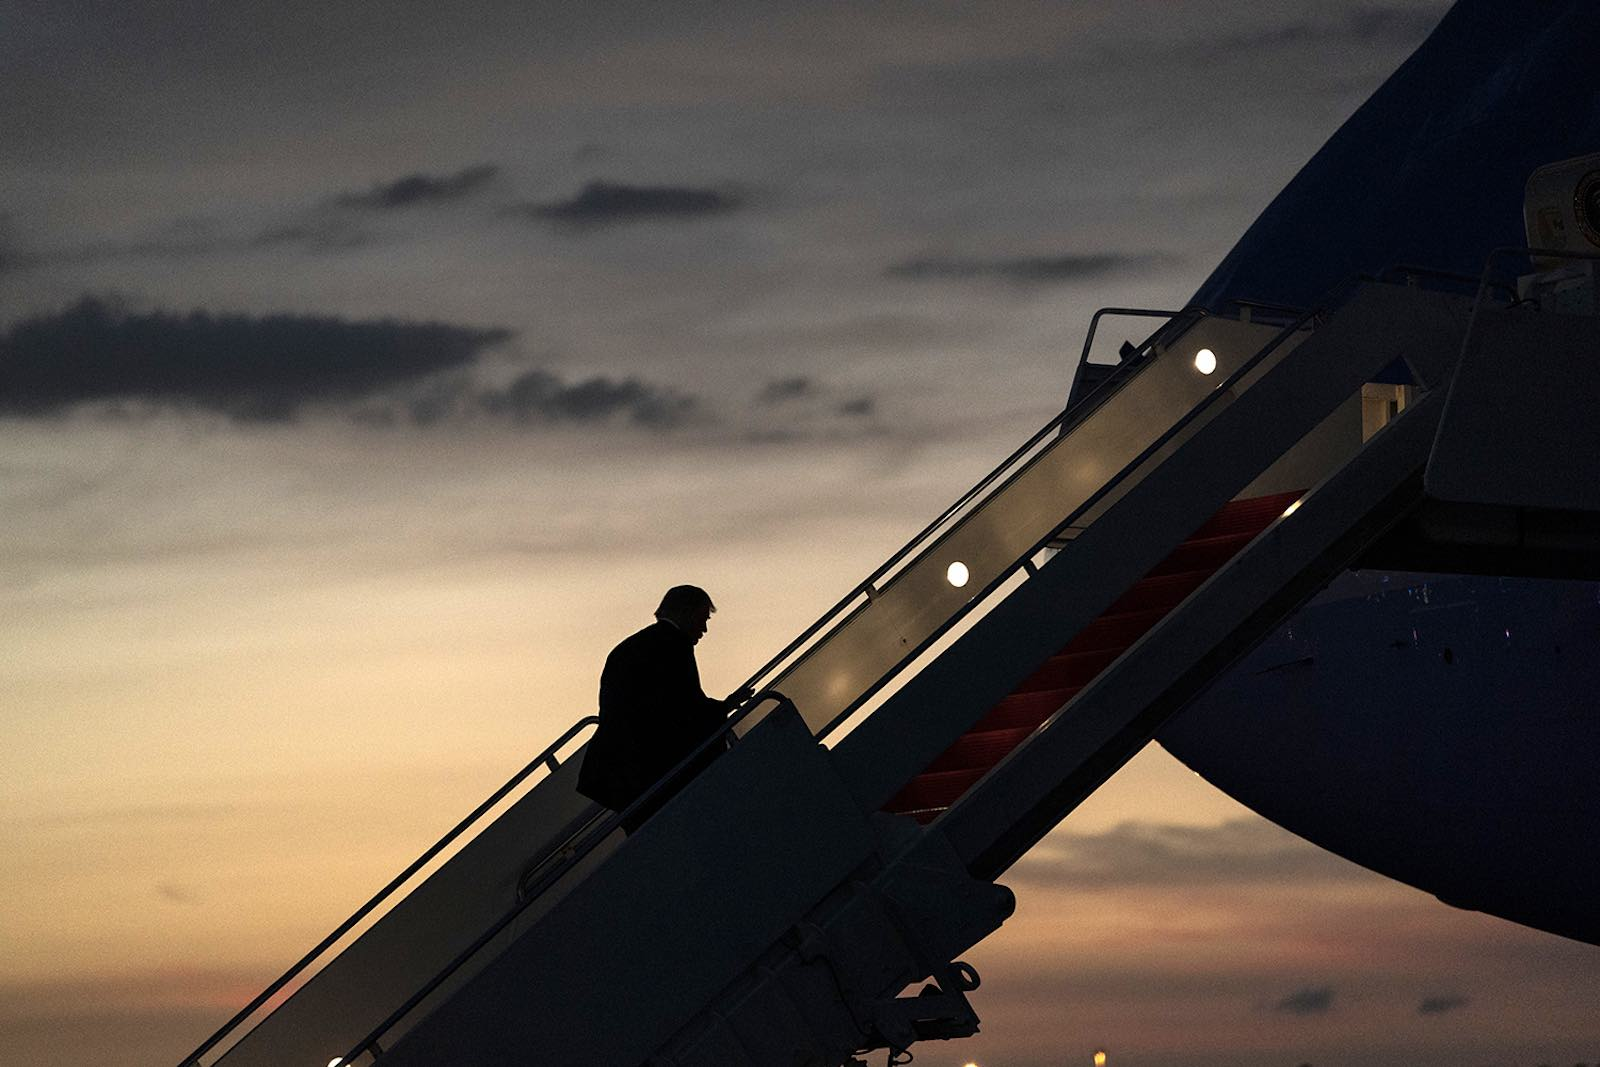 US President Donald Trump boarding Air Force One in Tampa, Florida, 31 July 2020 (White House/Flickr)